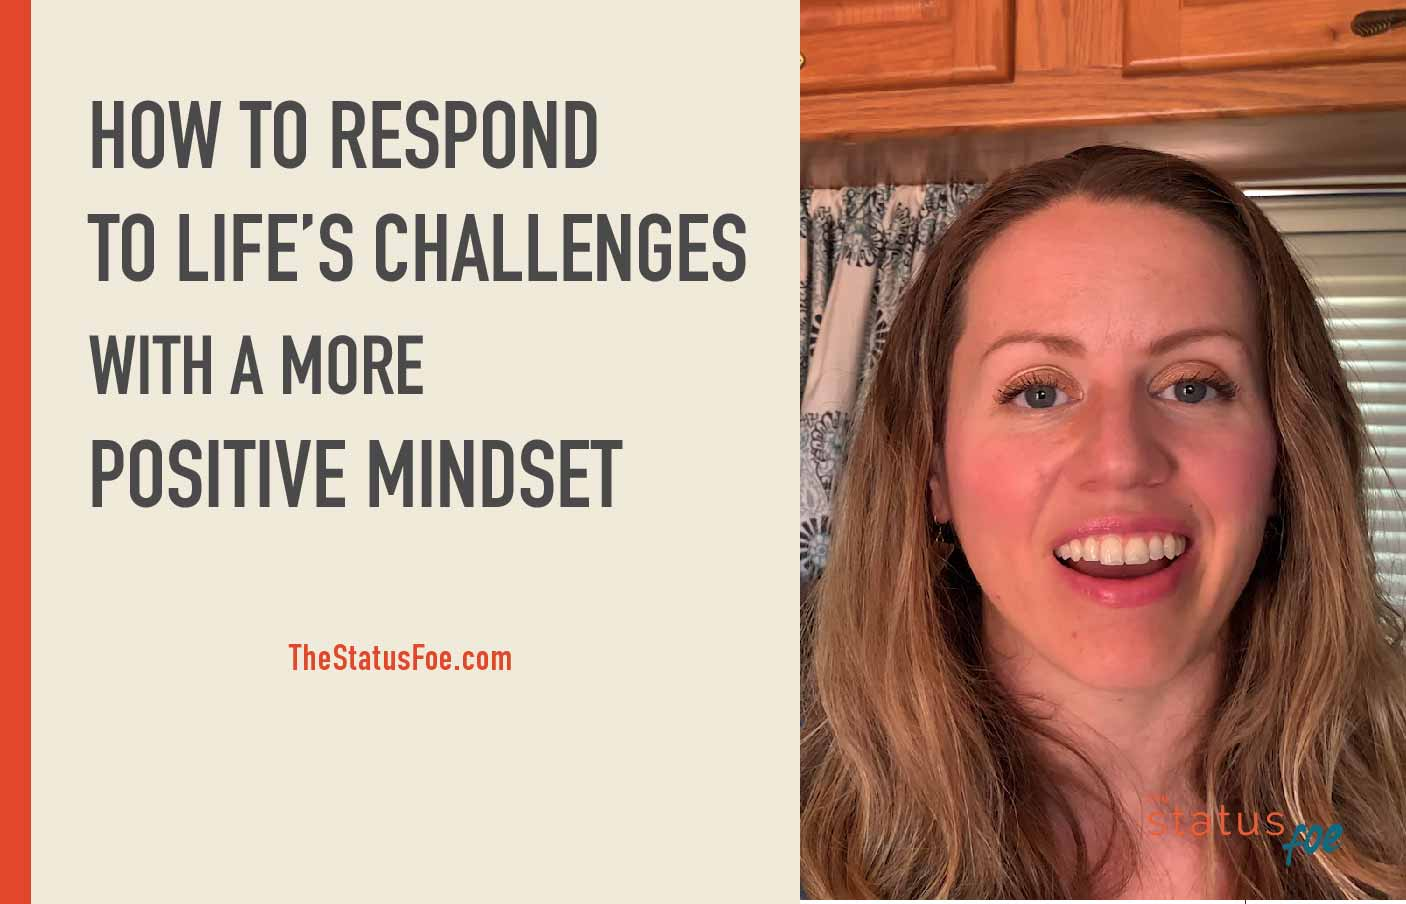 How to respond to life's challenges with a more positive mindset